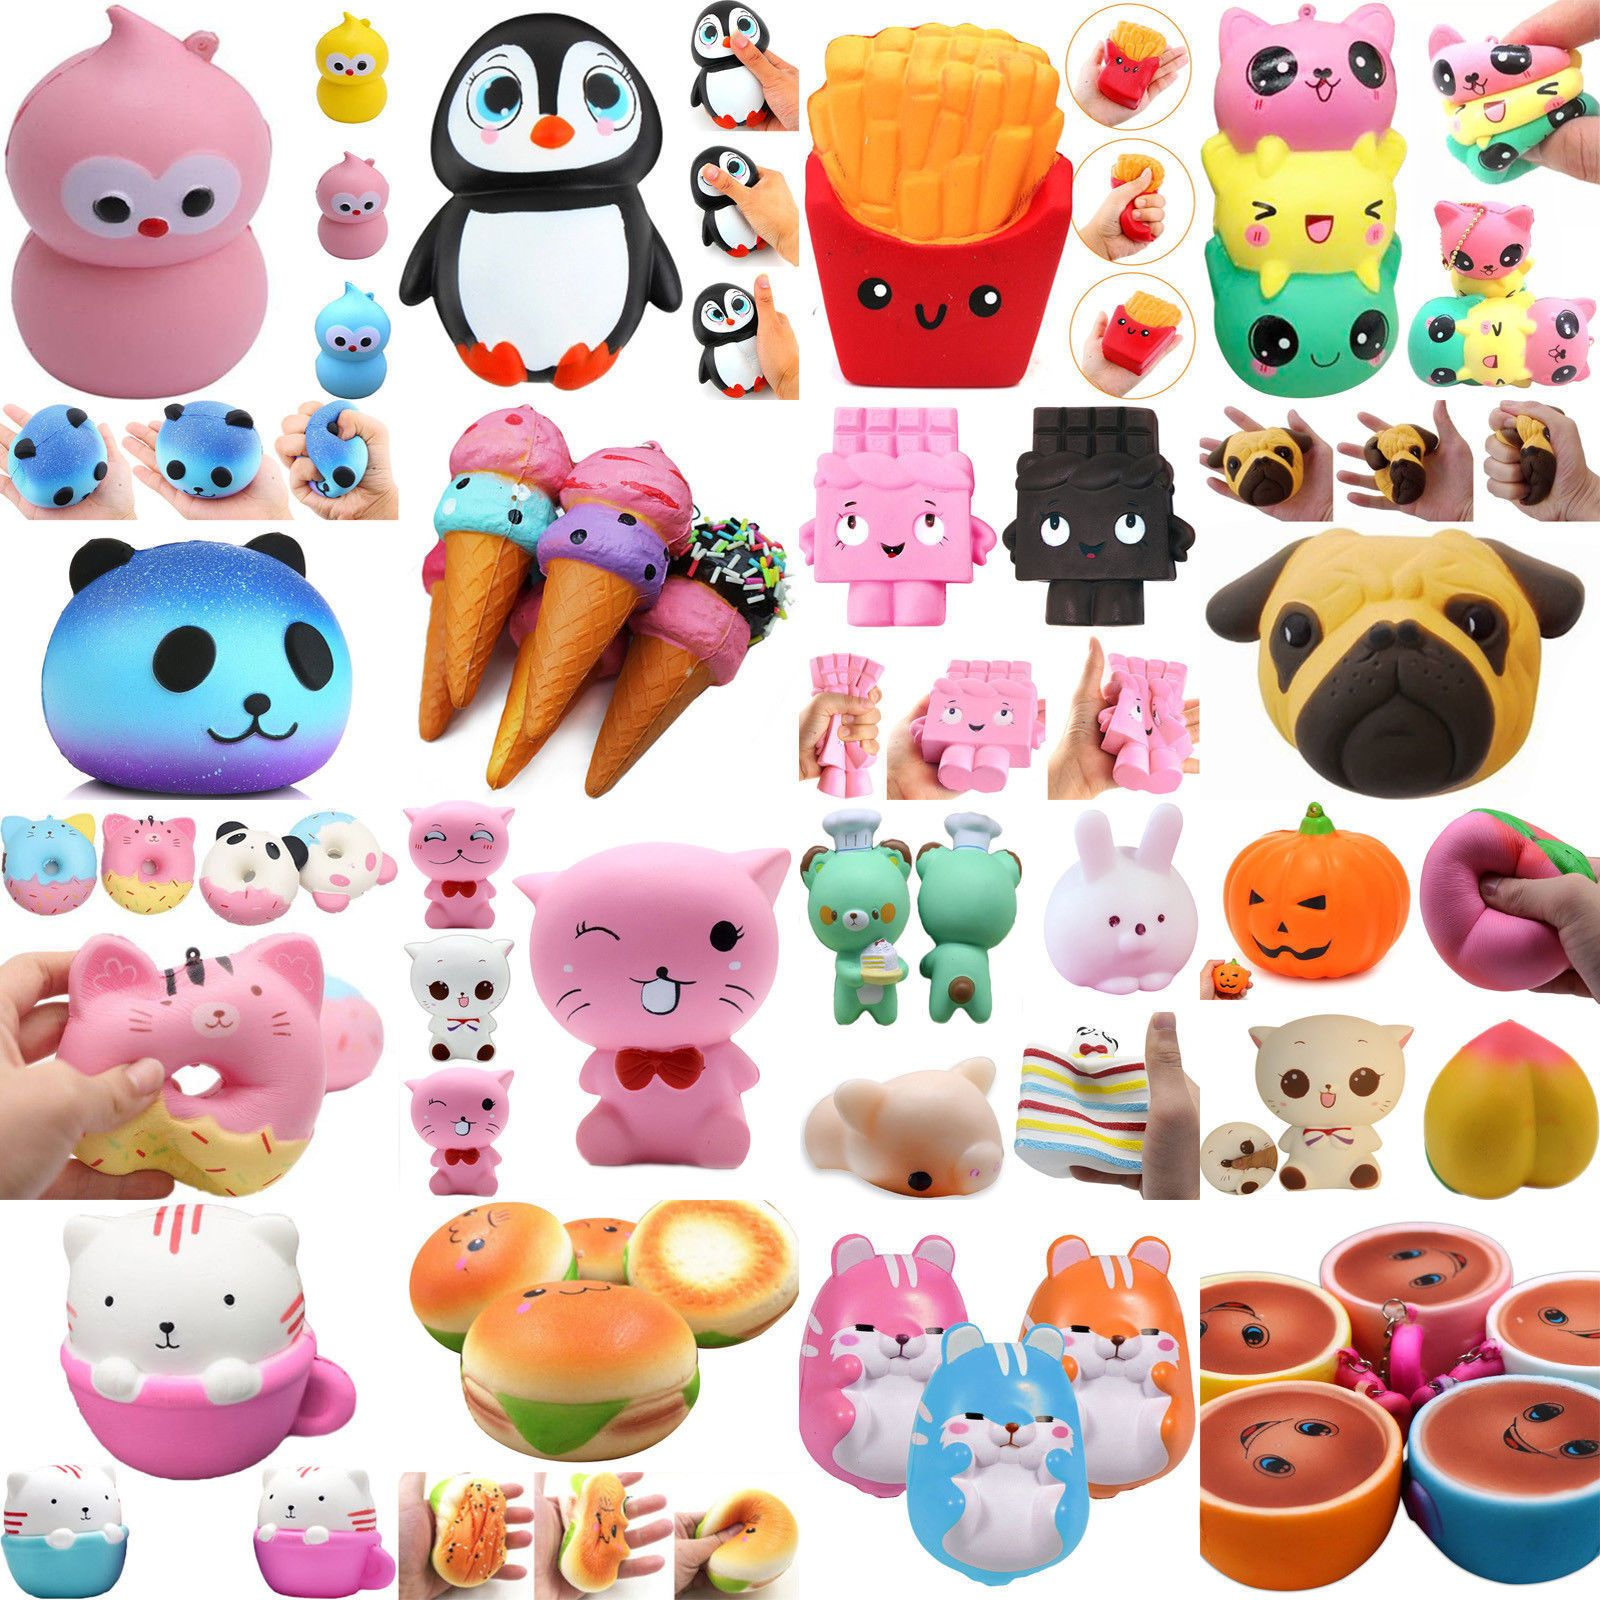 Ornaments The Cheapest Price 2017 Hot Sale Lot 10pcs Pop Food&rilakkuma Cute Charms Squeeze Slow Rising Toy Collection